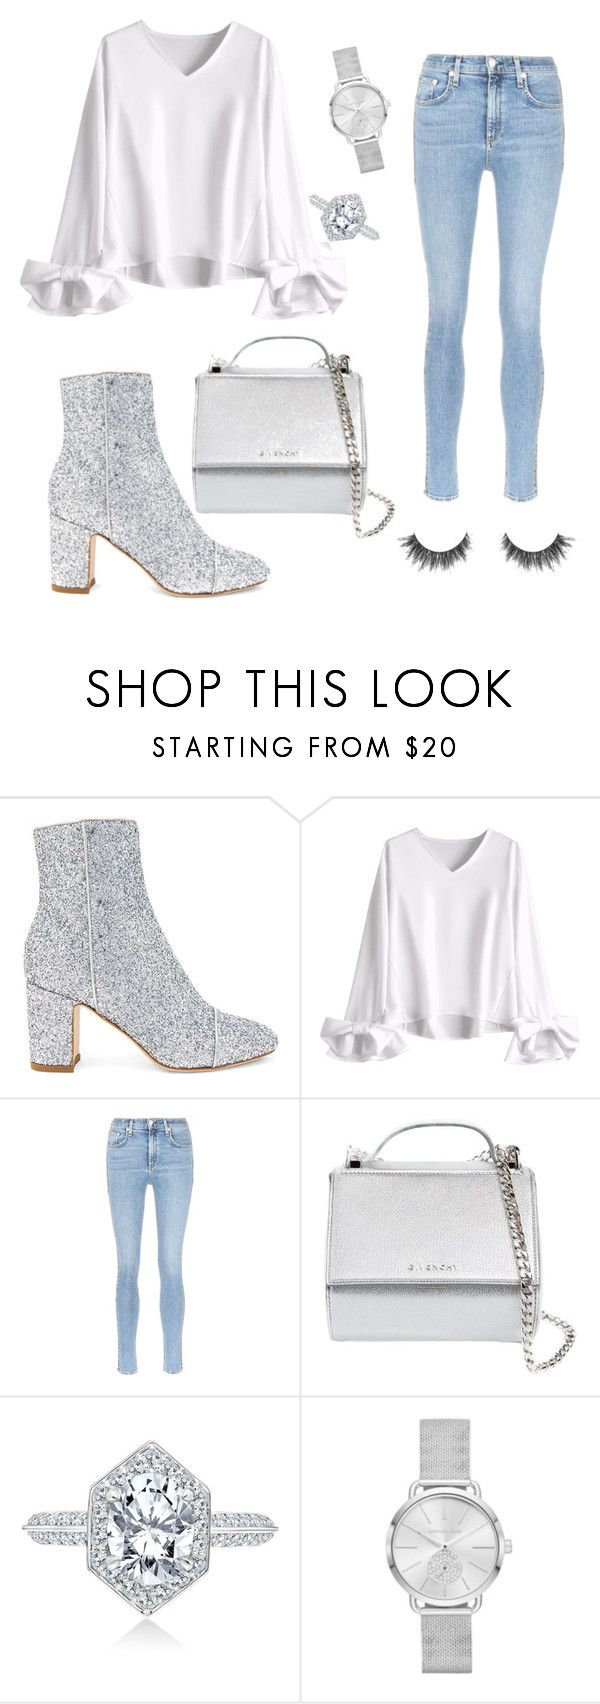 """All about the silvers"" by madeleinelnz ❤ liked on Polyvore featuring Polly Plume, rag & bone/JEAN, Givenchy, Michael Kors, Spring, Silver, jeans and gray"